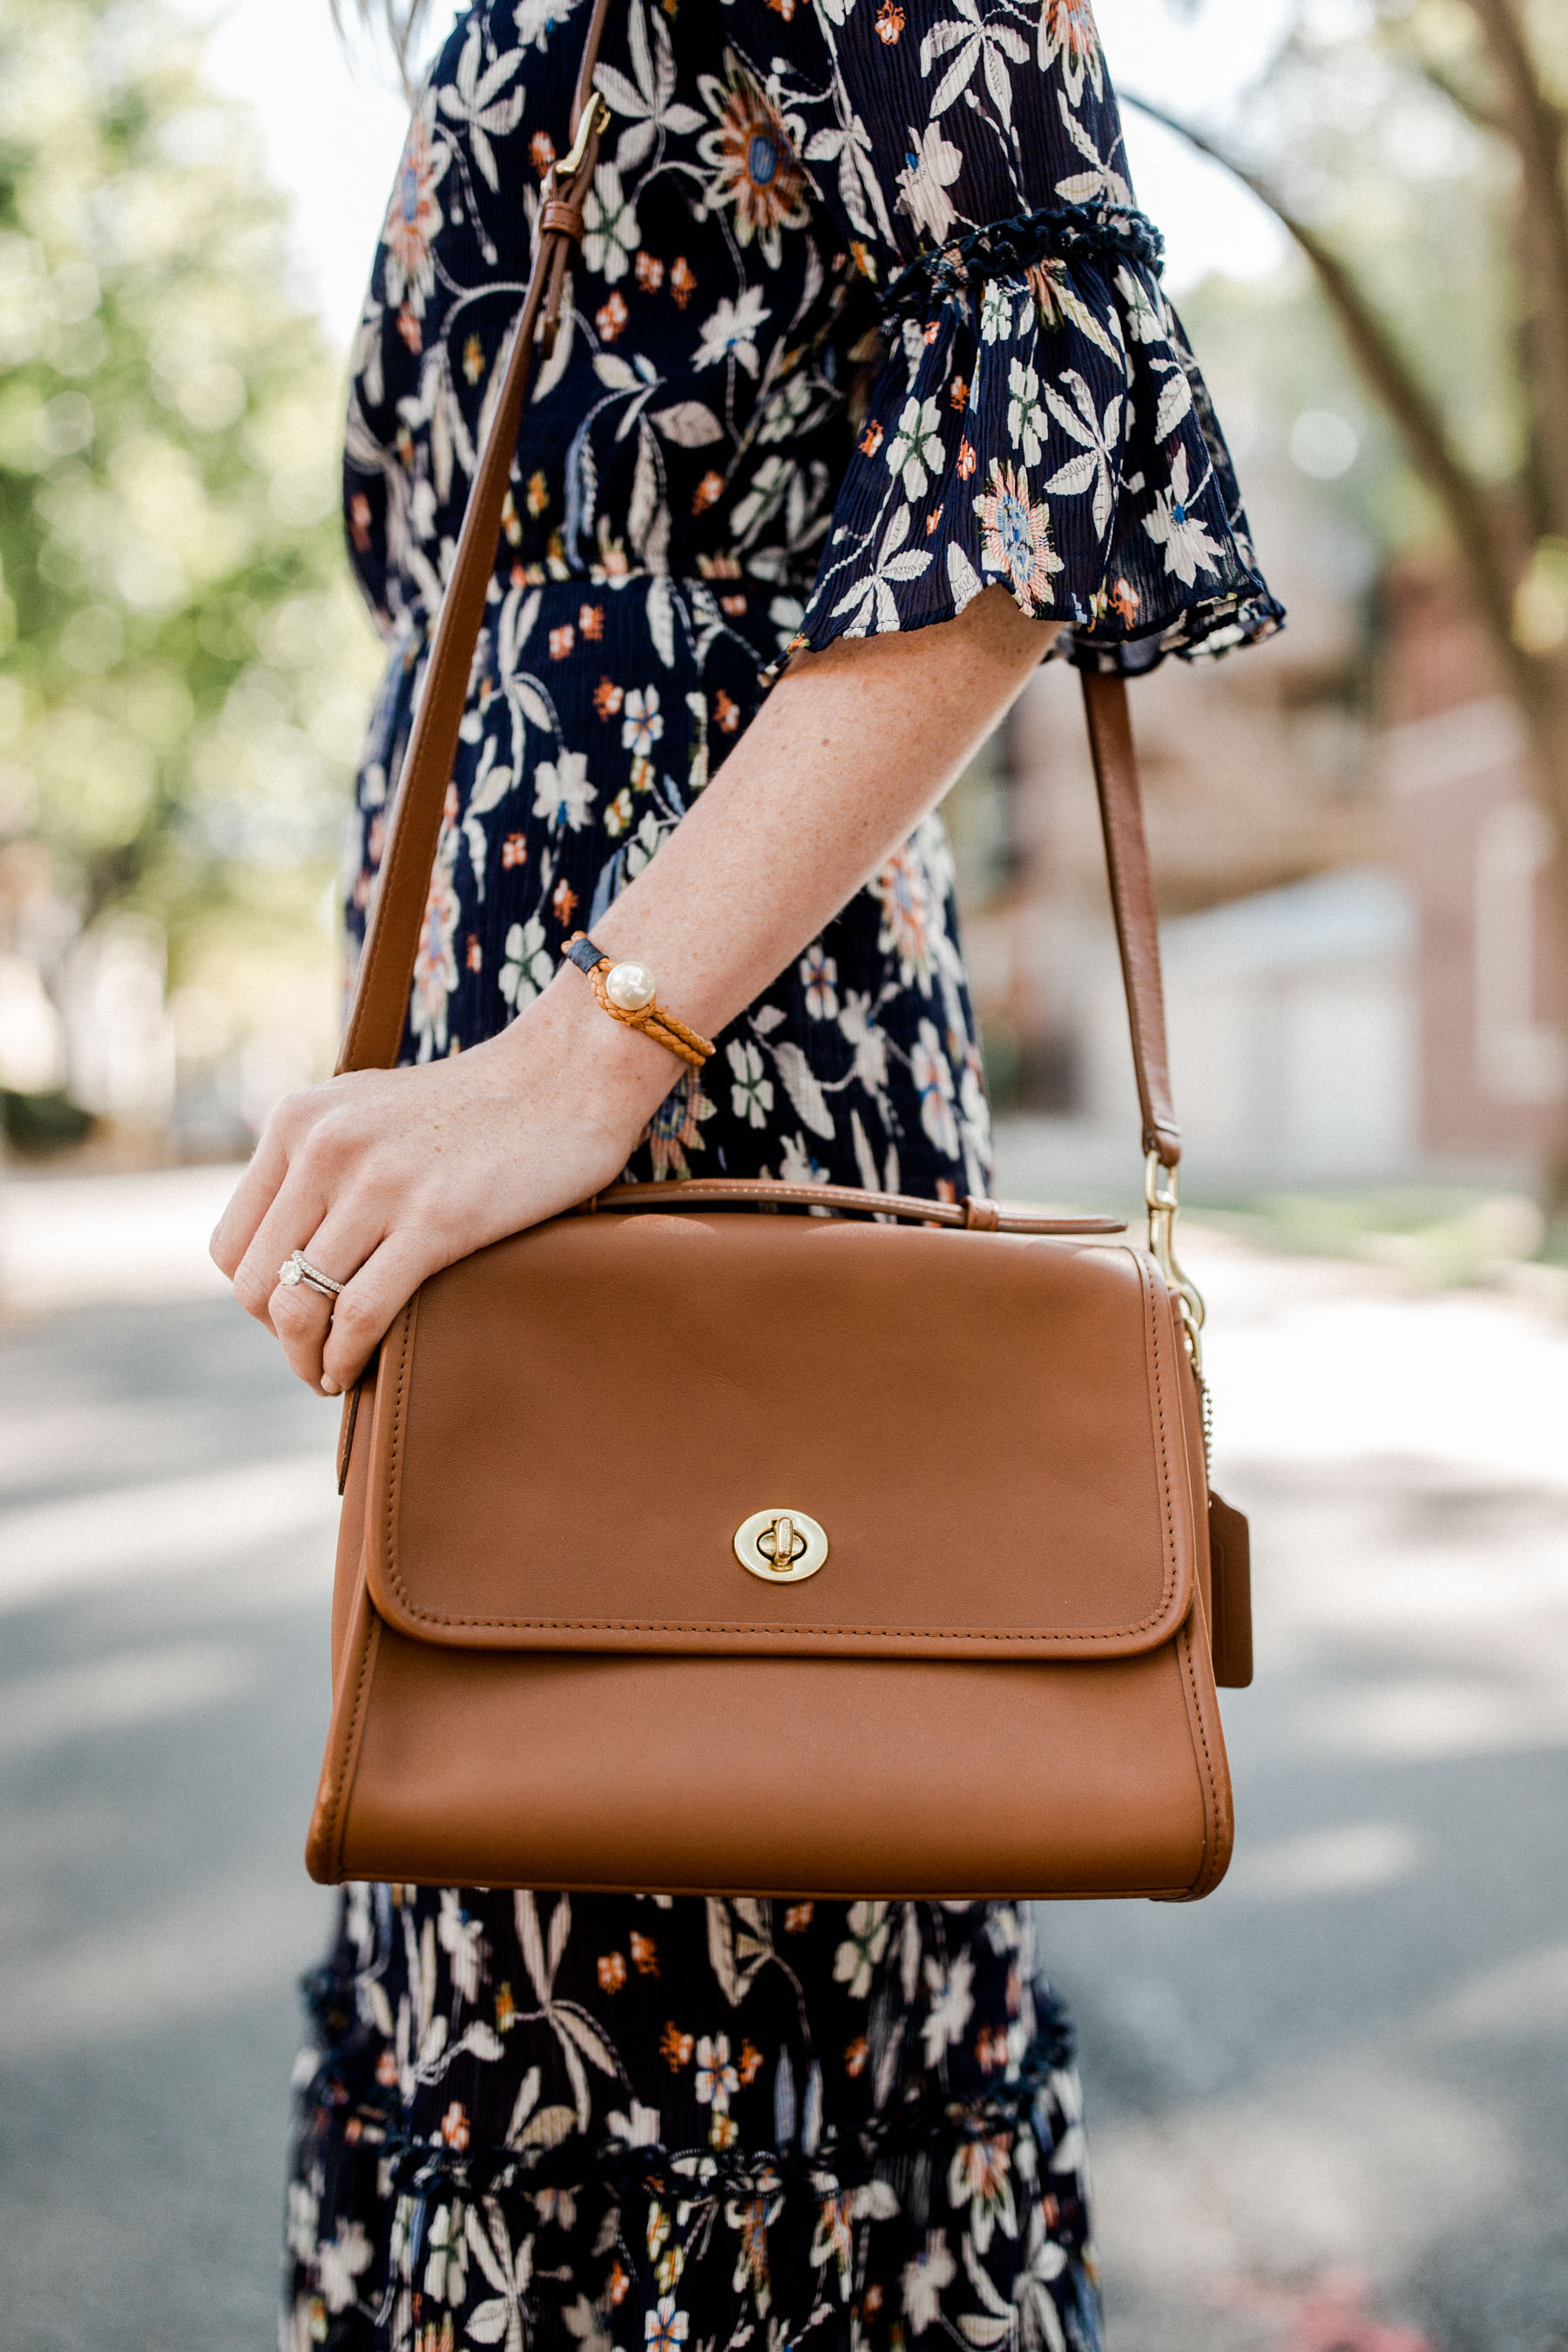 Preppy bags for fall